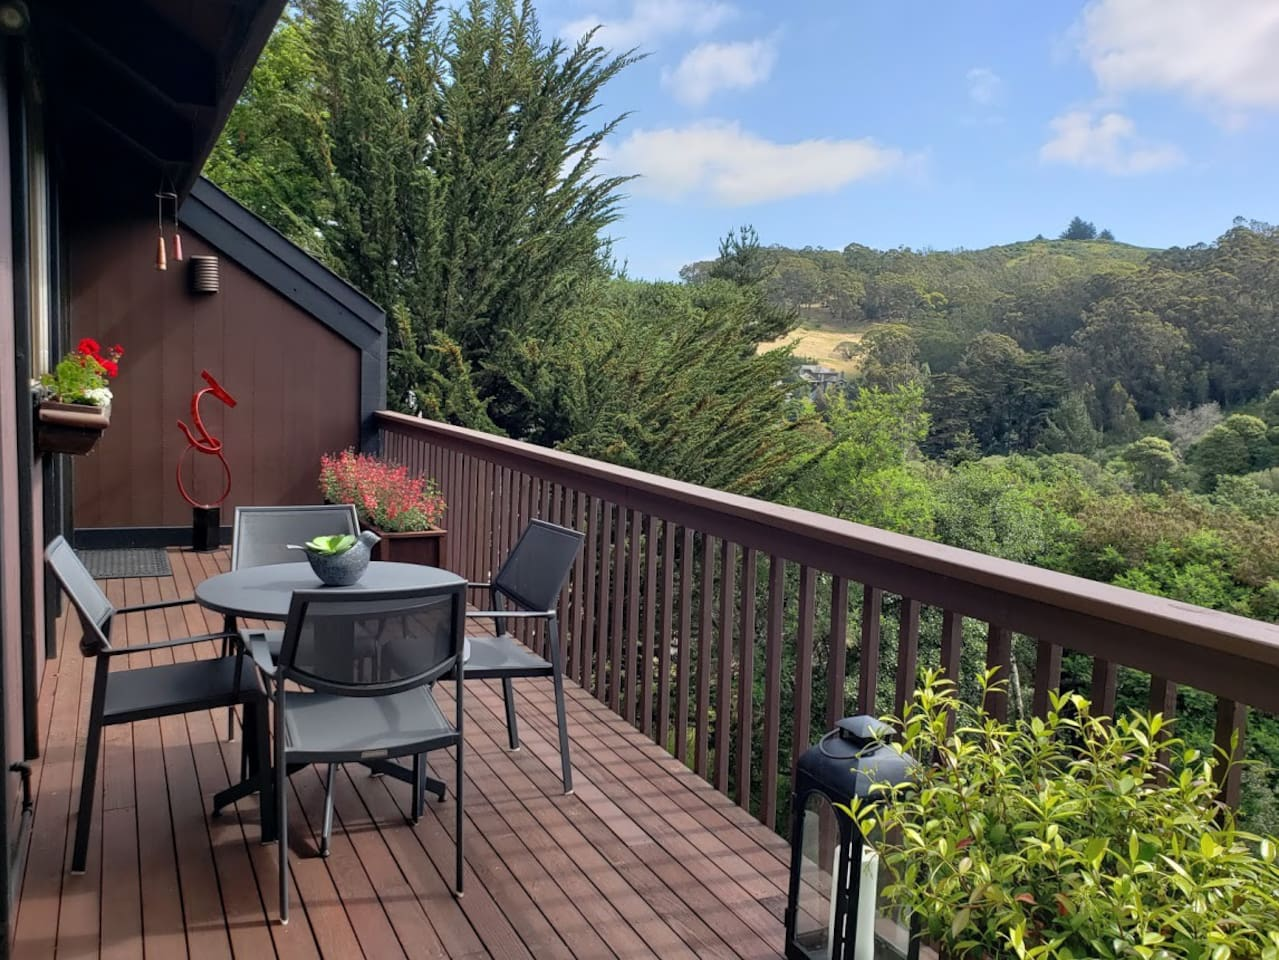 Enjoy views from the back deck.